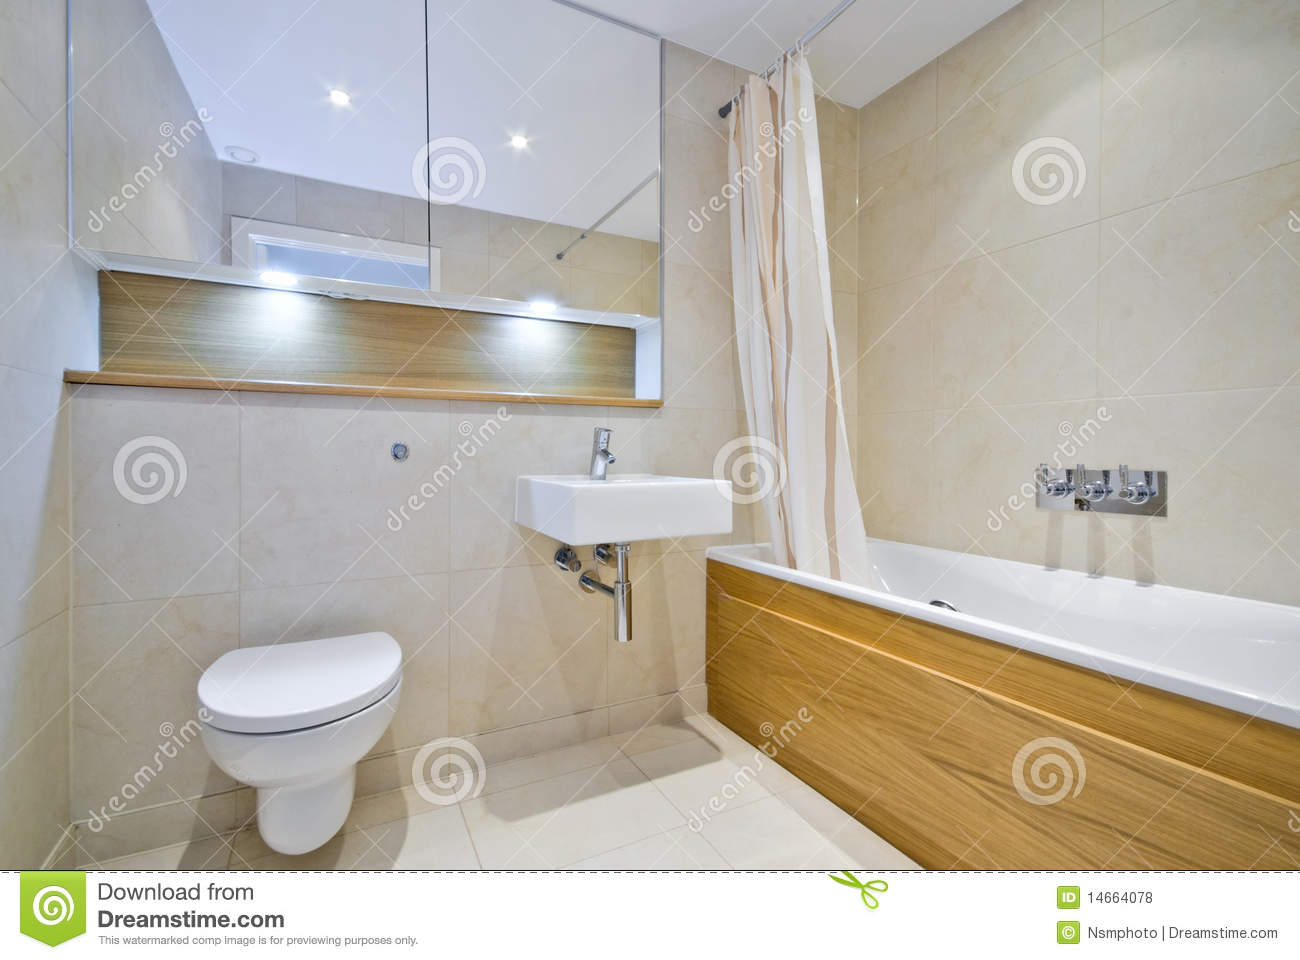 Cuartos De Baño Con Tina:Large Modern Bathroom with Tub